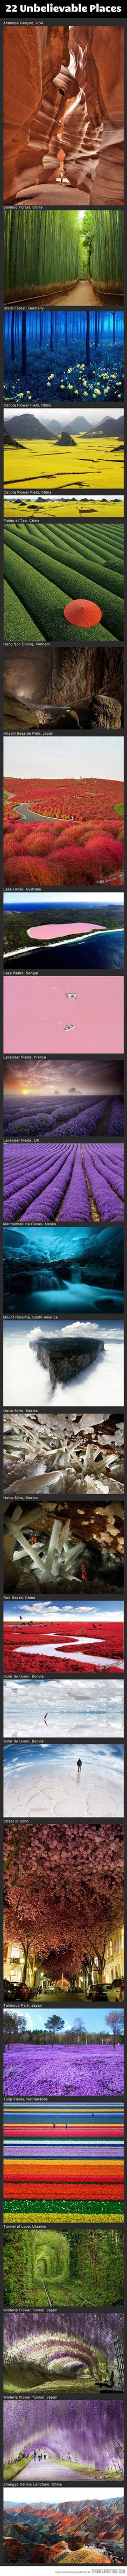 Unbelievable places around the world…